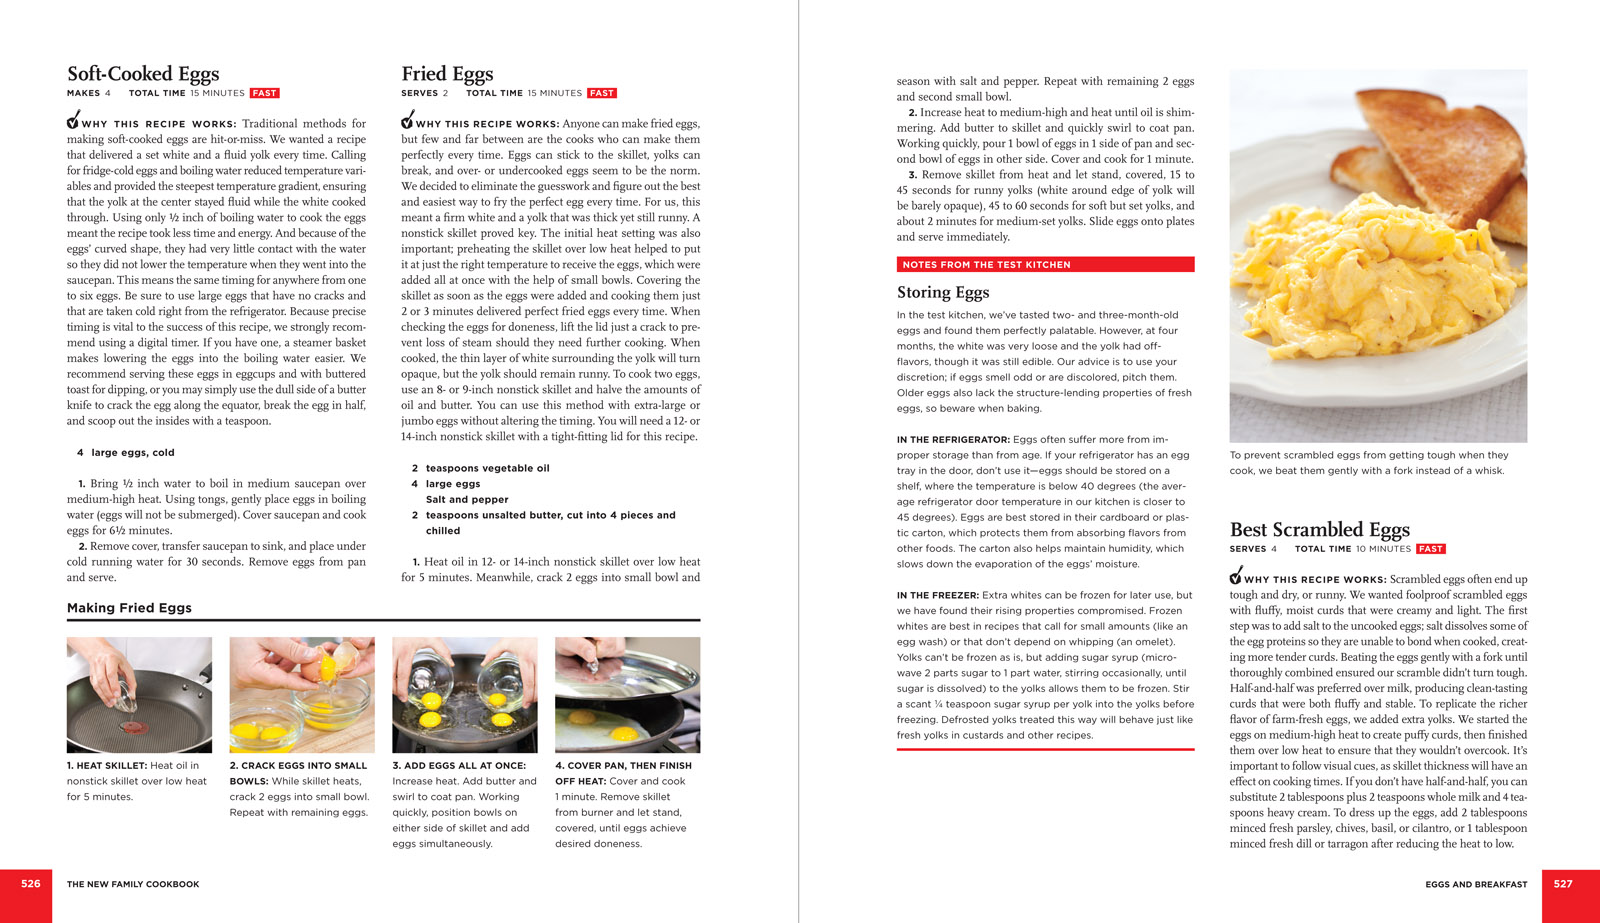 Inside the book the americas test kitchen new family cookbook view full recipe list pdf forumfinder